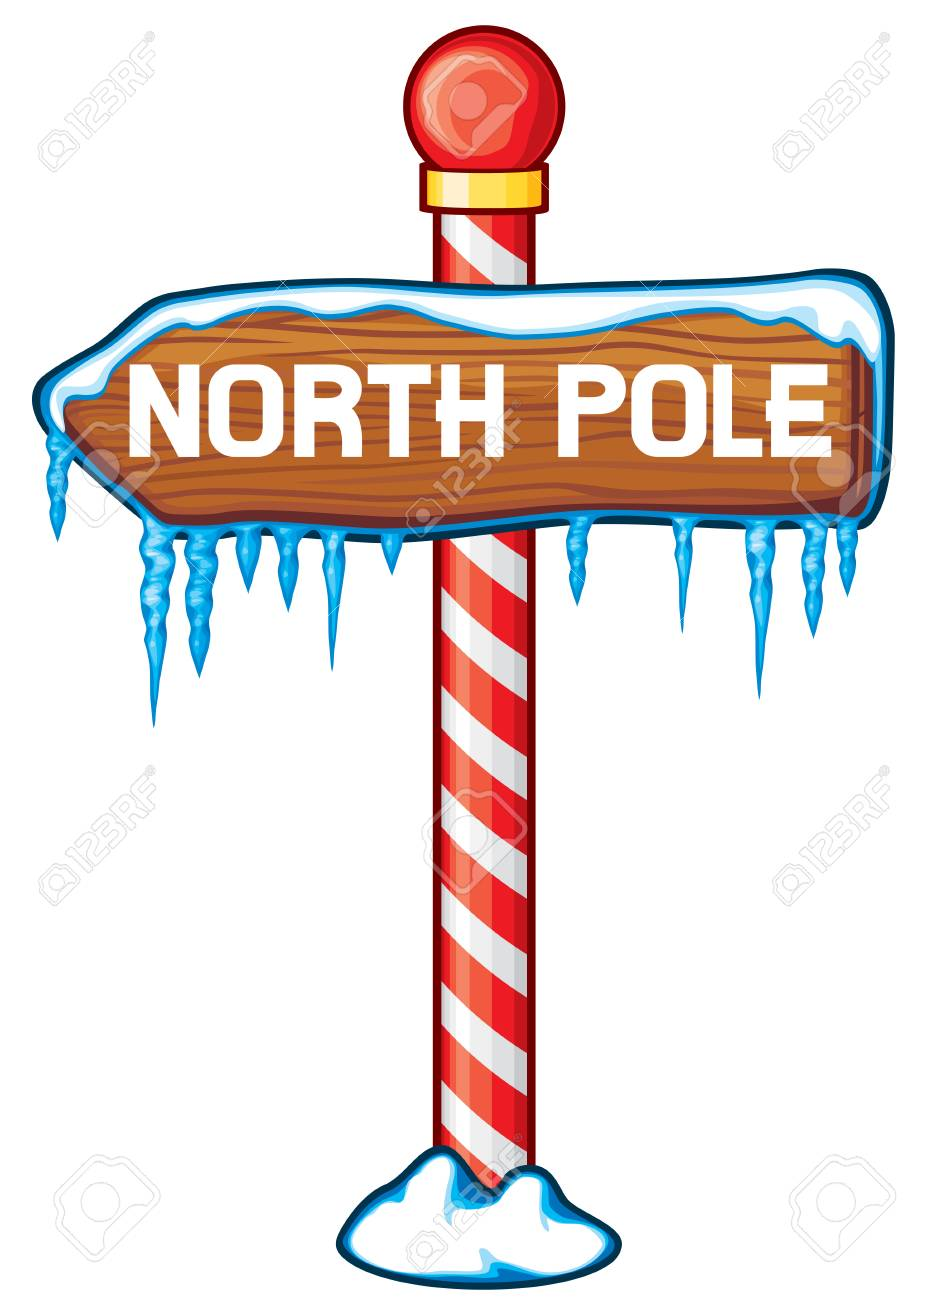 North Pole wooden sign vector illustration. - 88415234